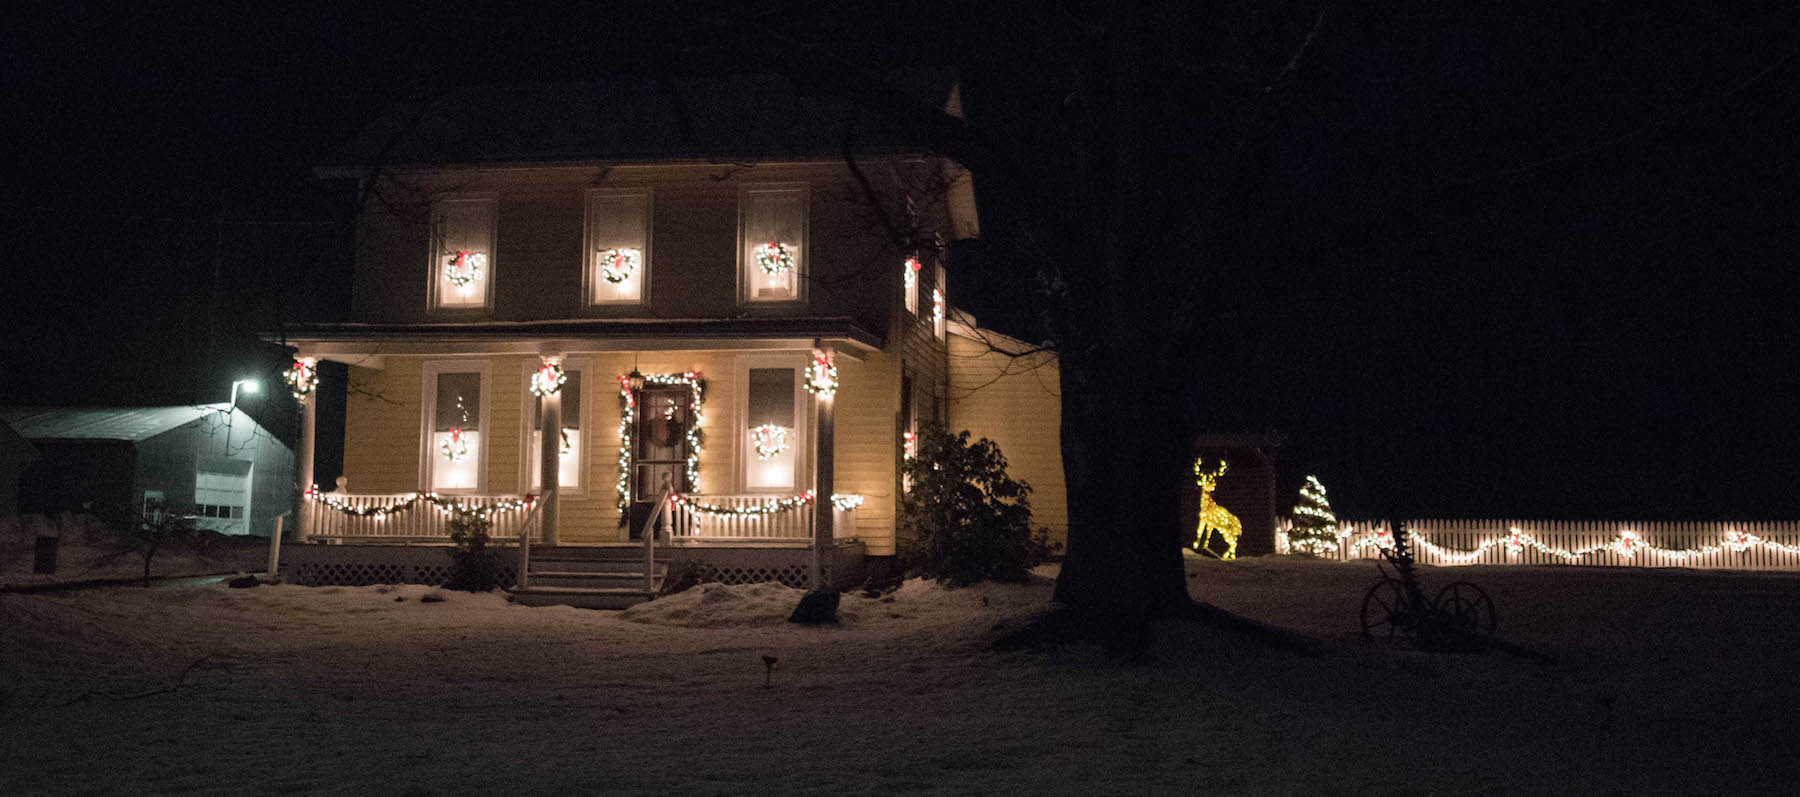 Tioga County Tourism announces winners in the 'Light Up Tioga Driving Tour andContest'